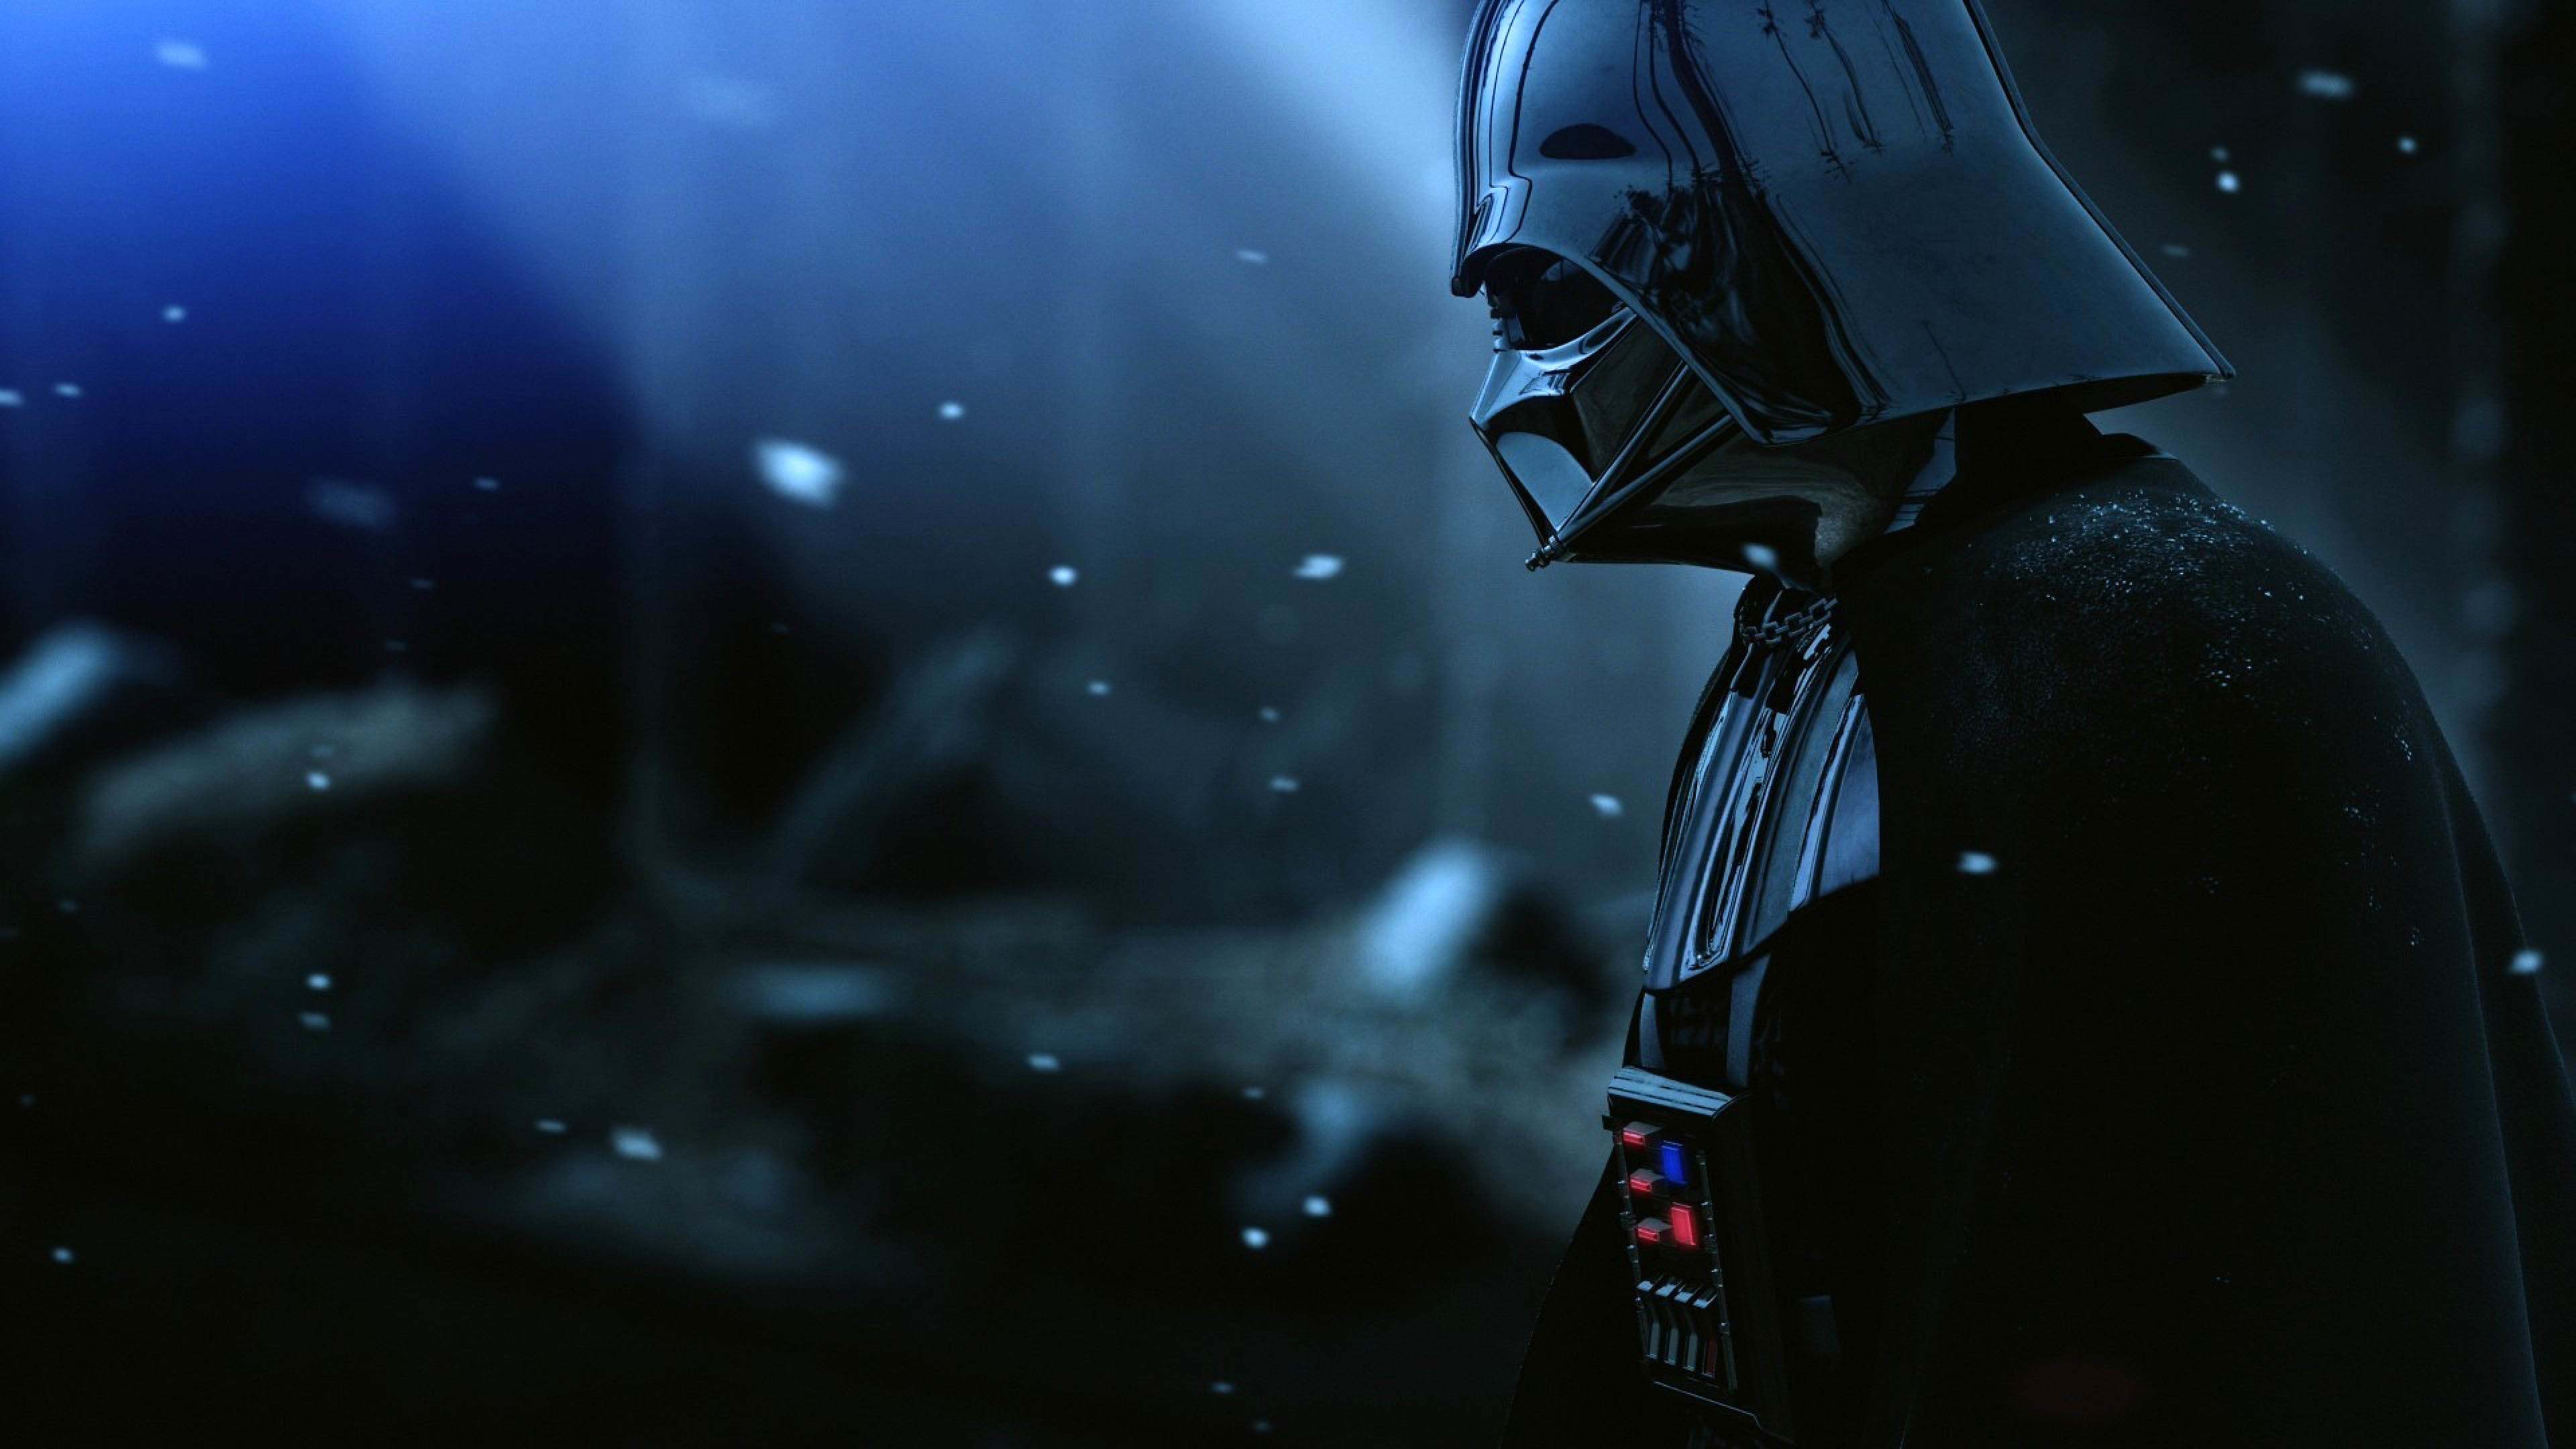 3840x2160 Darth Vader - Star Wars  wallpaper